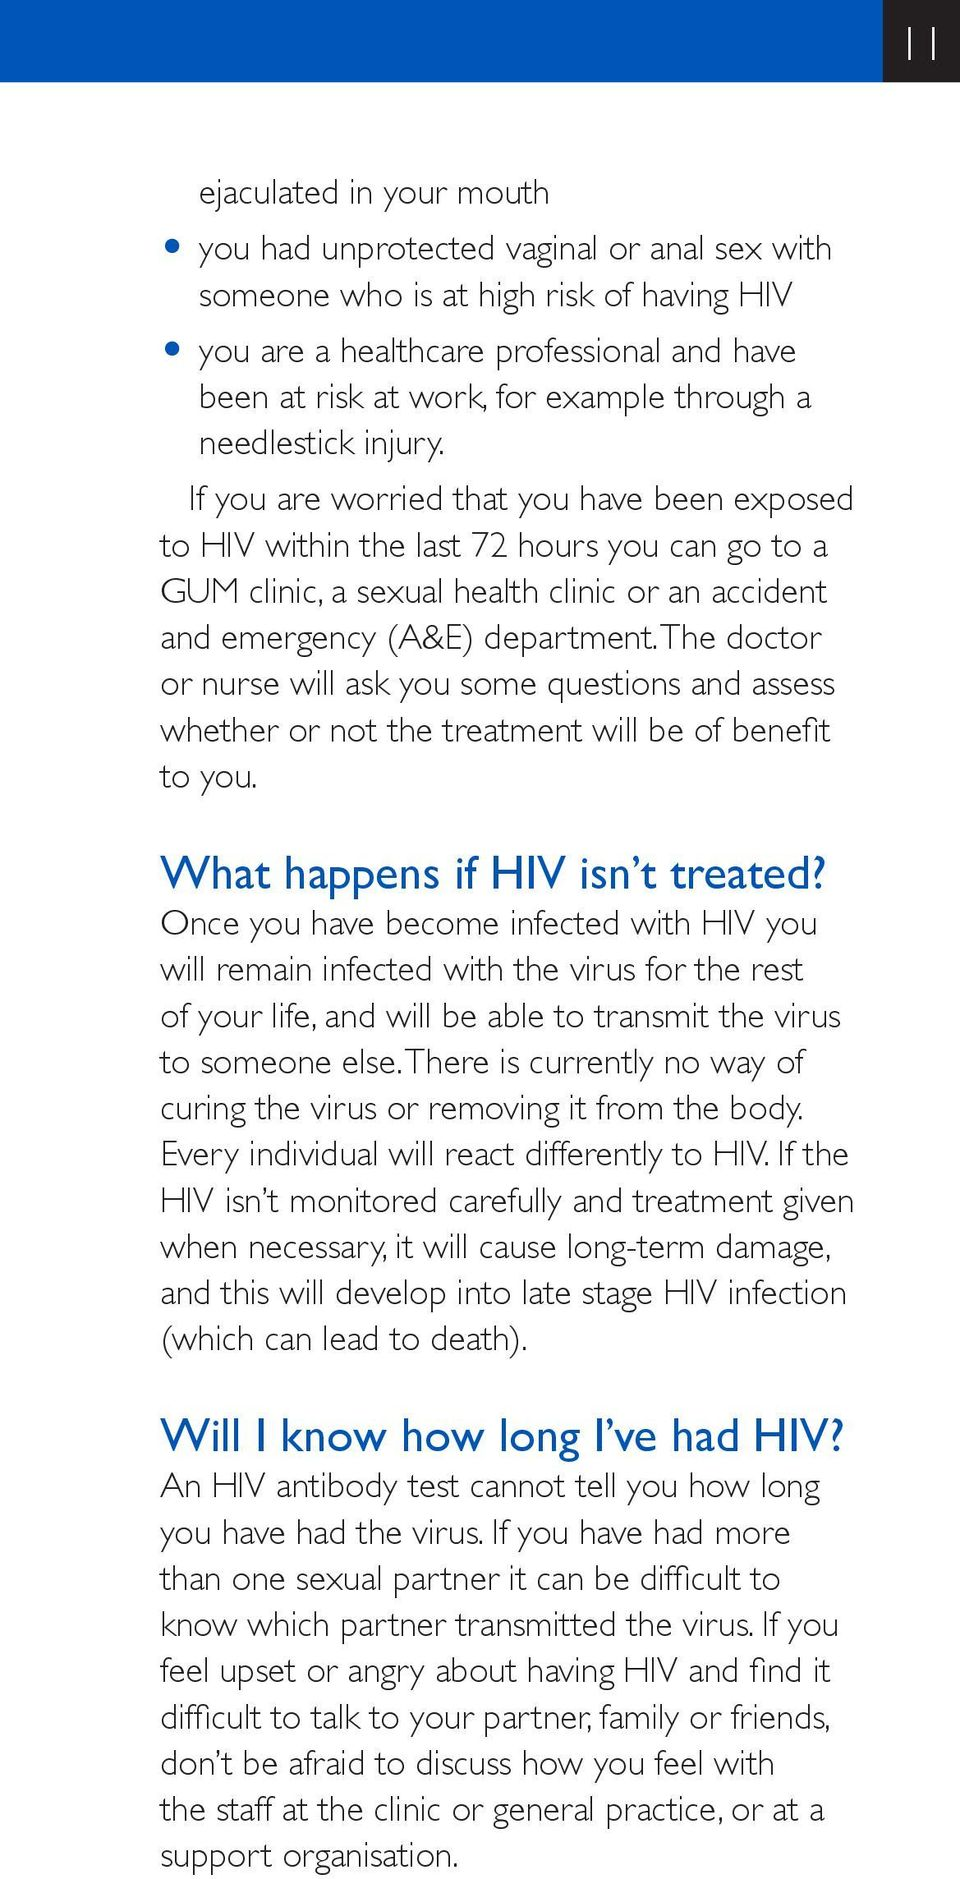 If you are worried that you have been exposed to HIV within the last 72 hours you can go to a GUM clinic, a sexual health clinic or an accident and emergency (A&E) department.